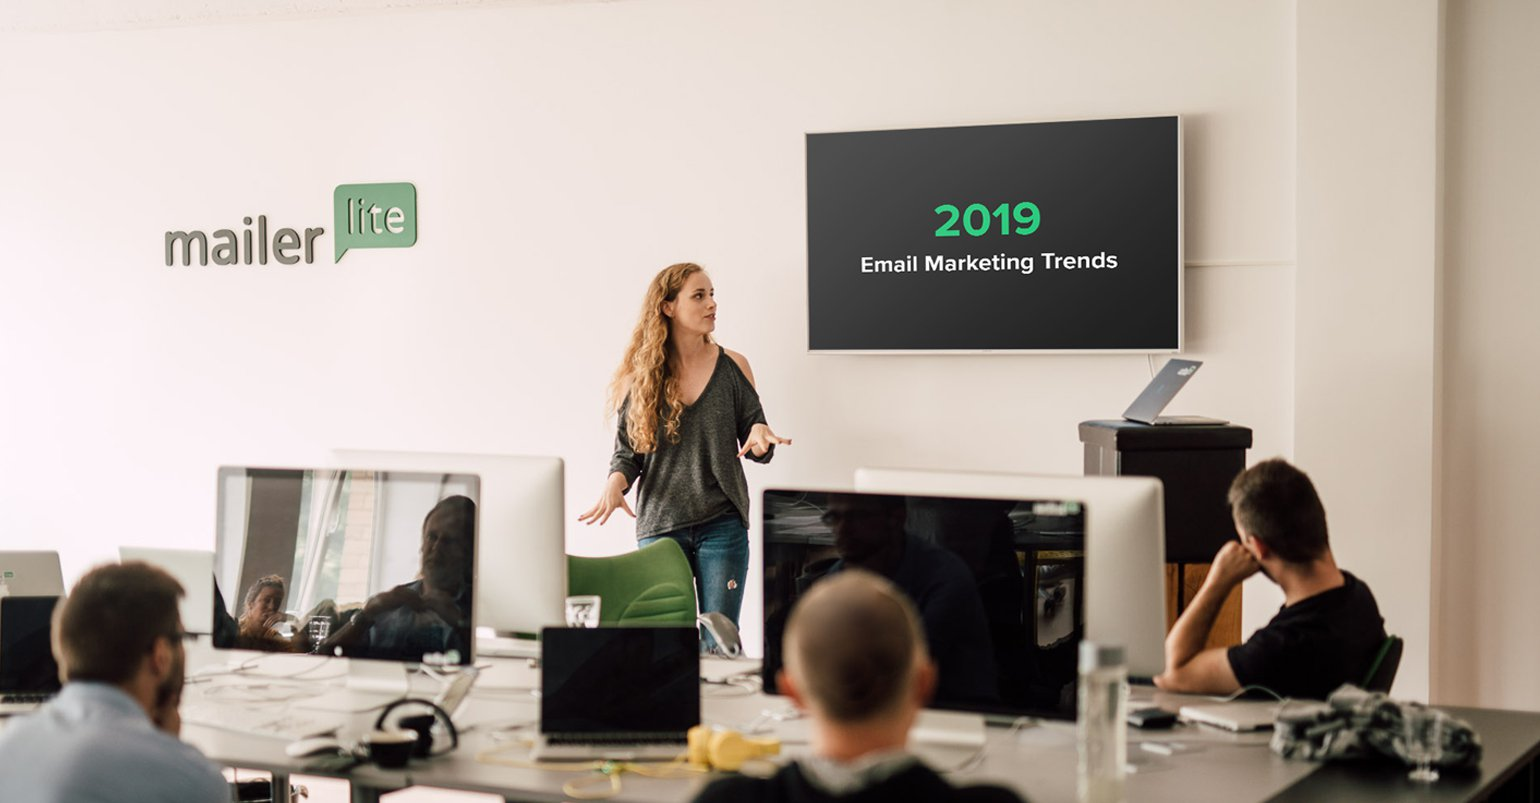 5 ways to win in 2019: Email marketing trends that matter to you